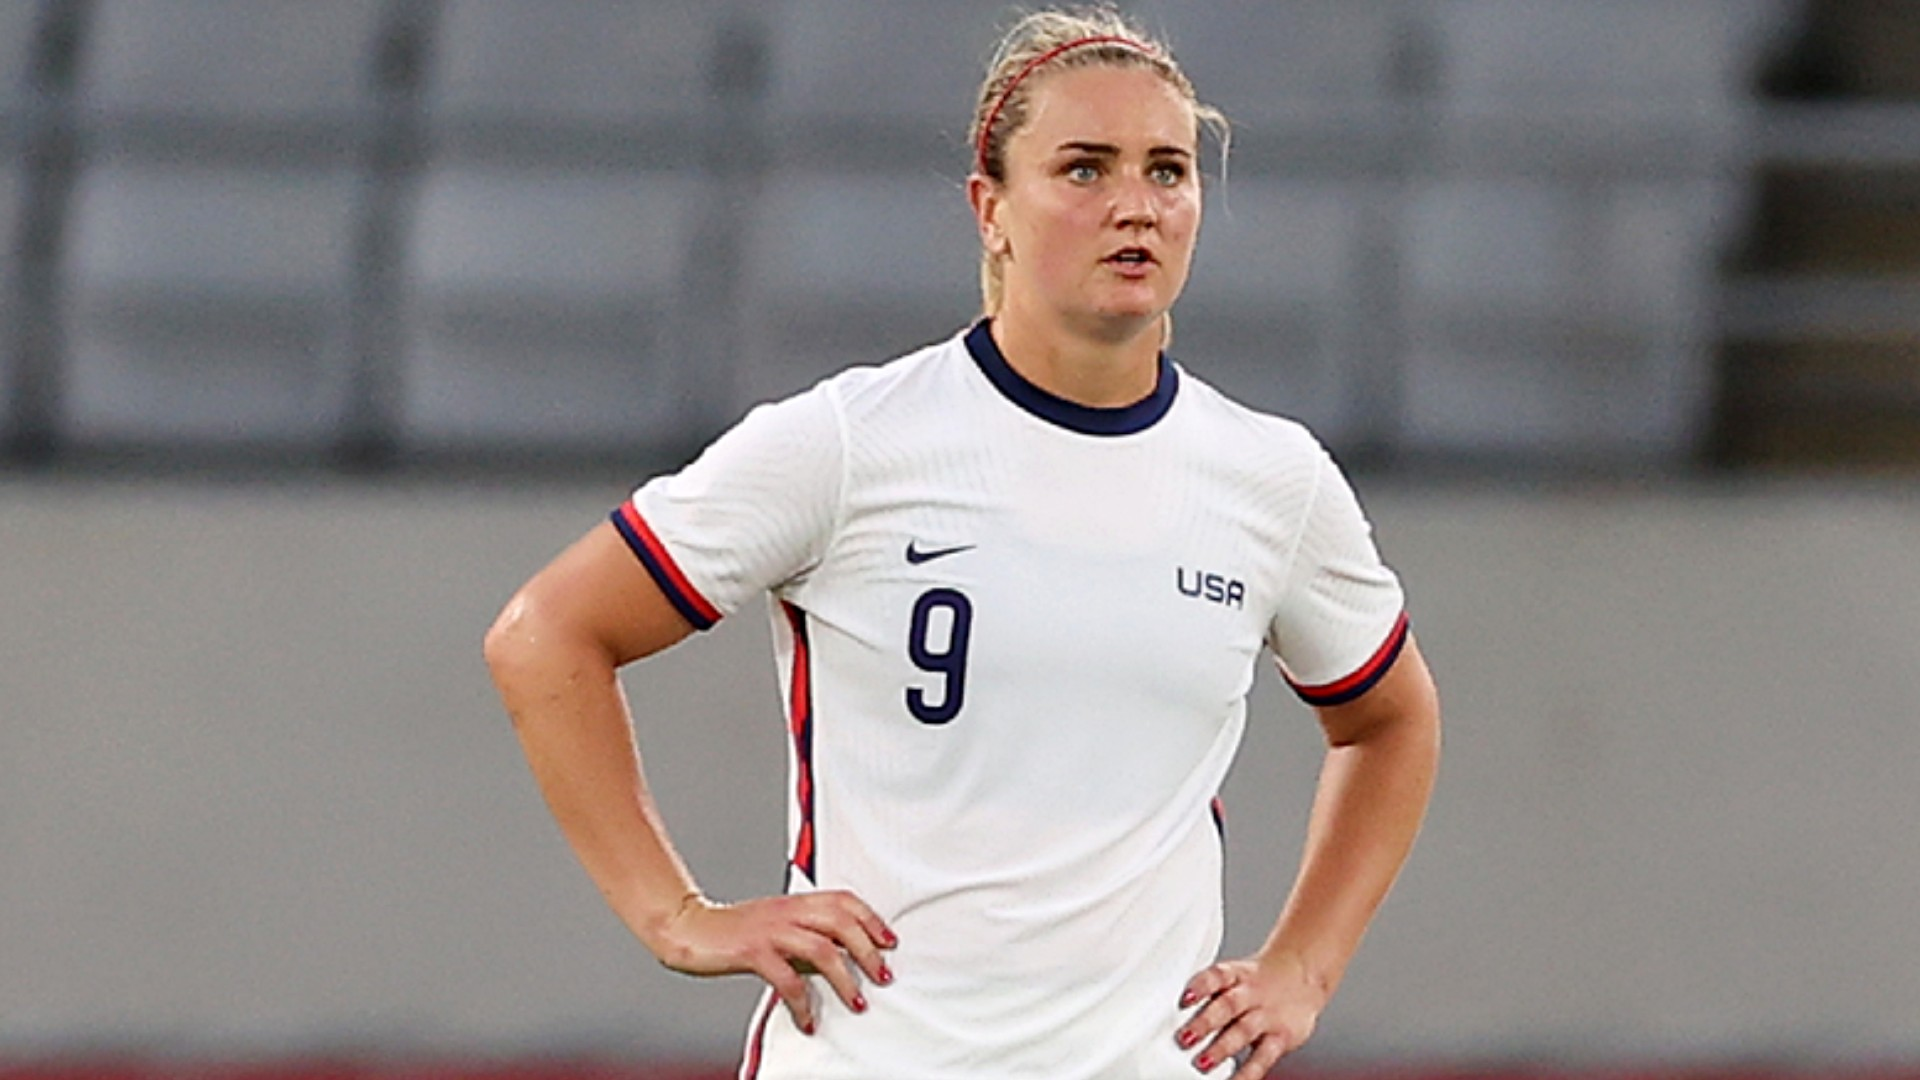 Why the USWNT lost big against Sweden: Six reasons behind the Olympic soccer debacle